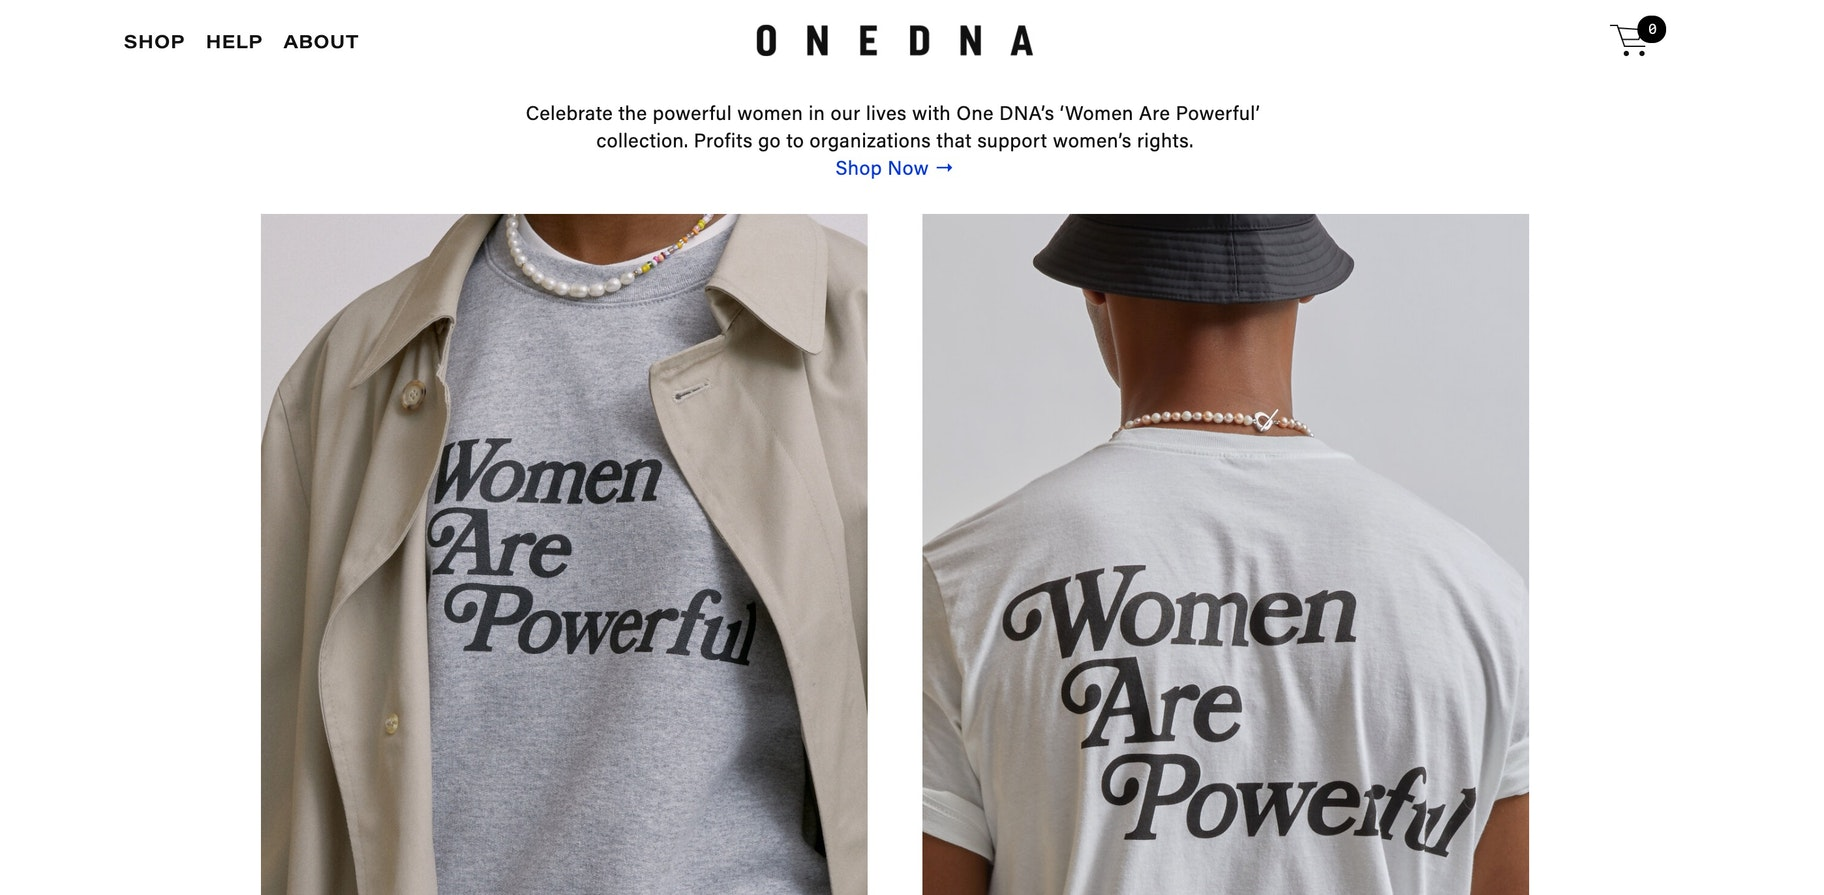 gender-defying clothing site